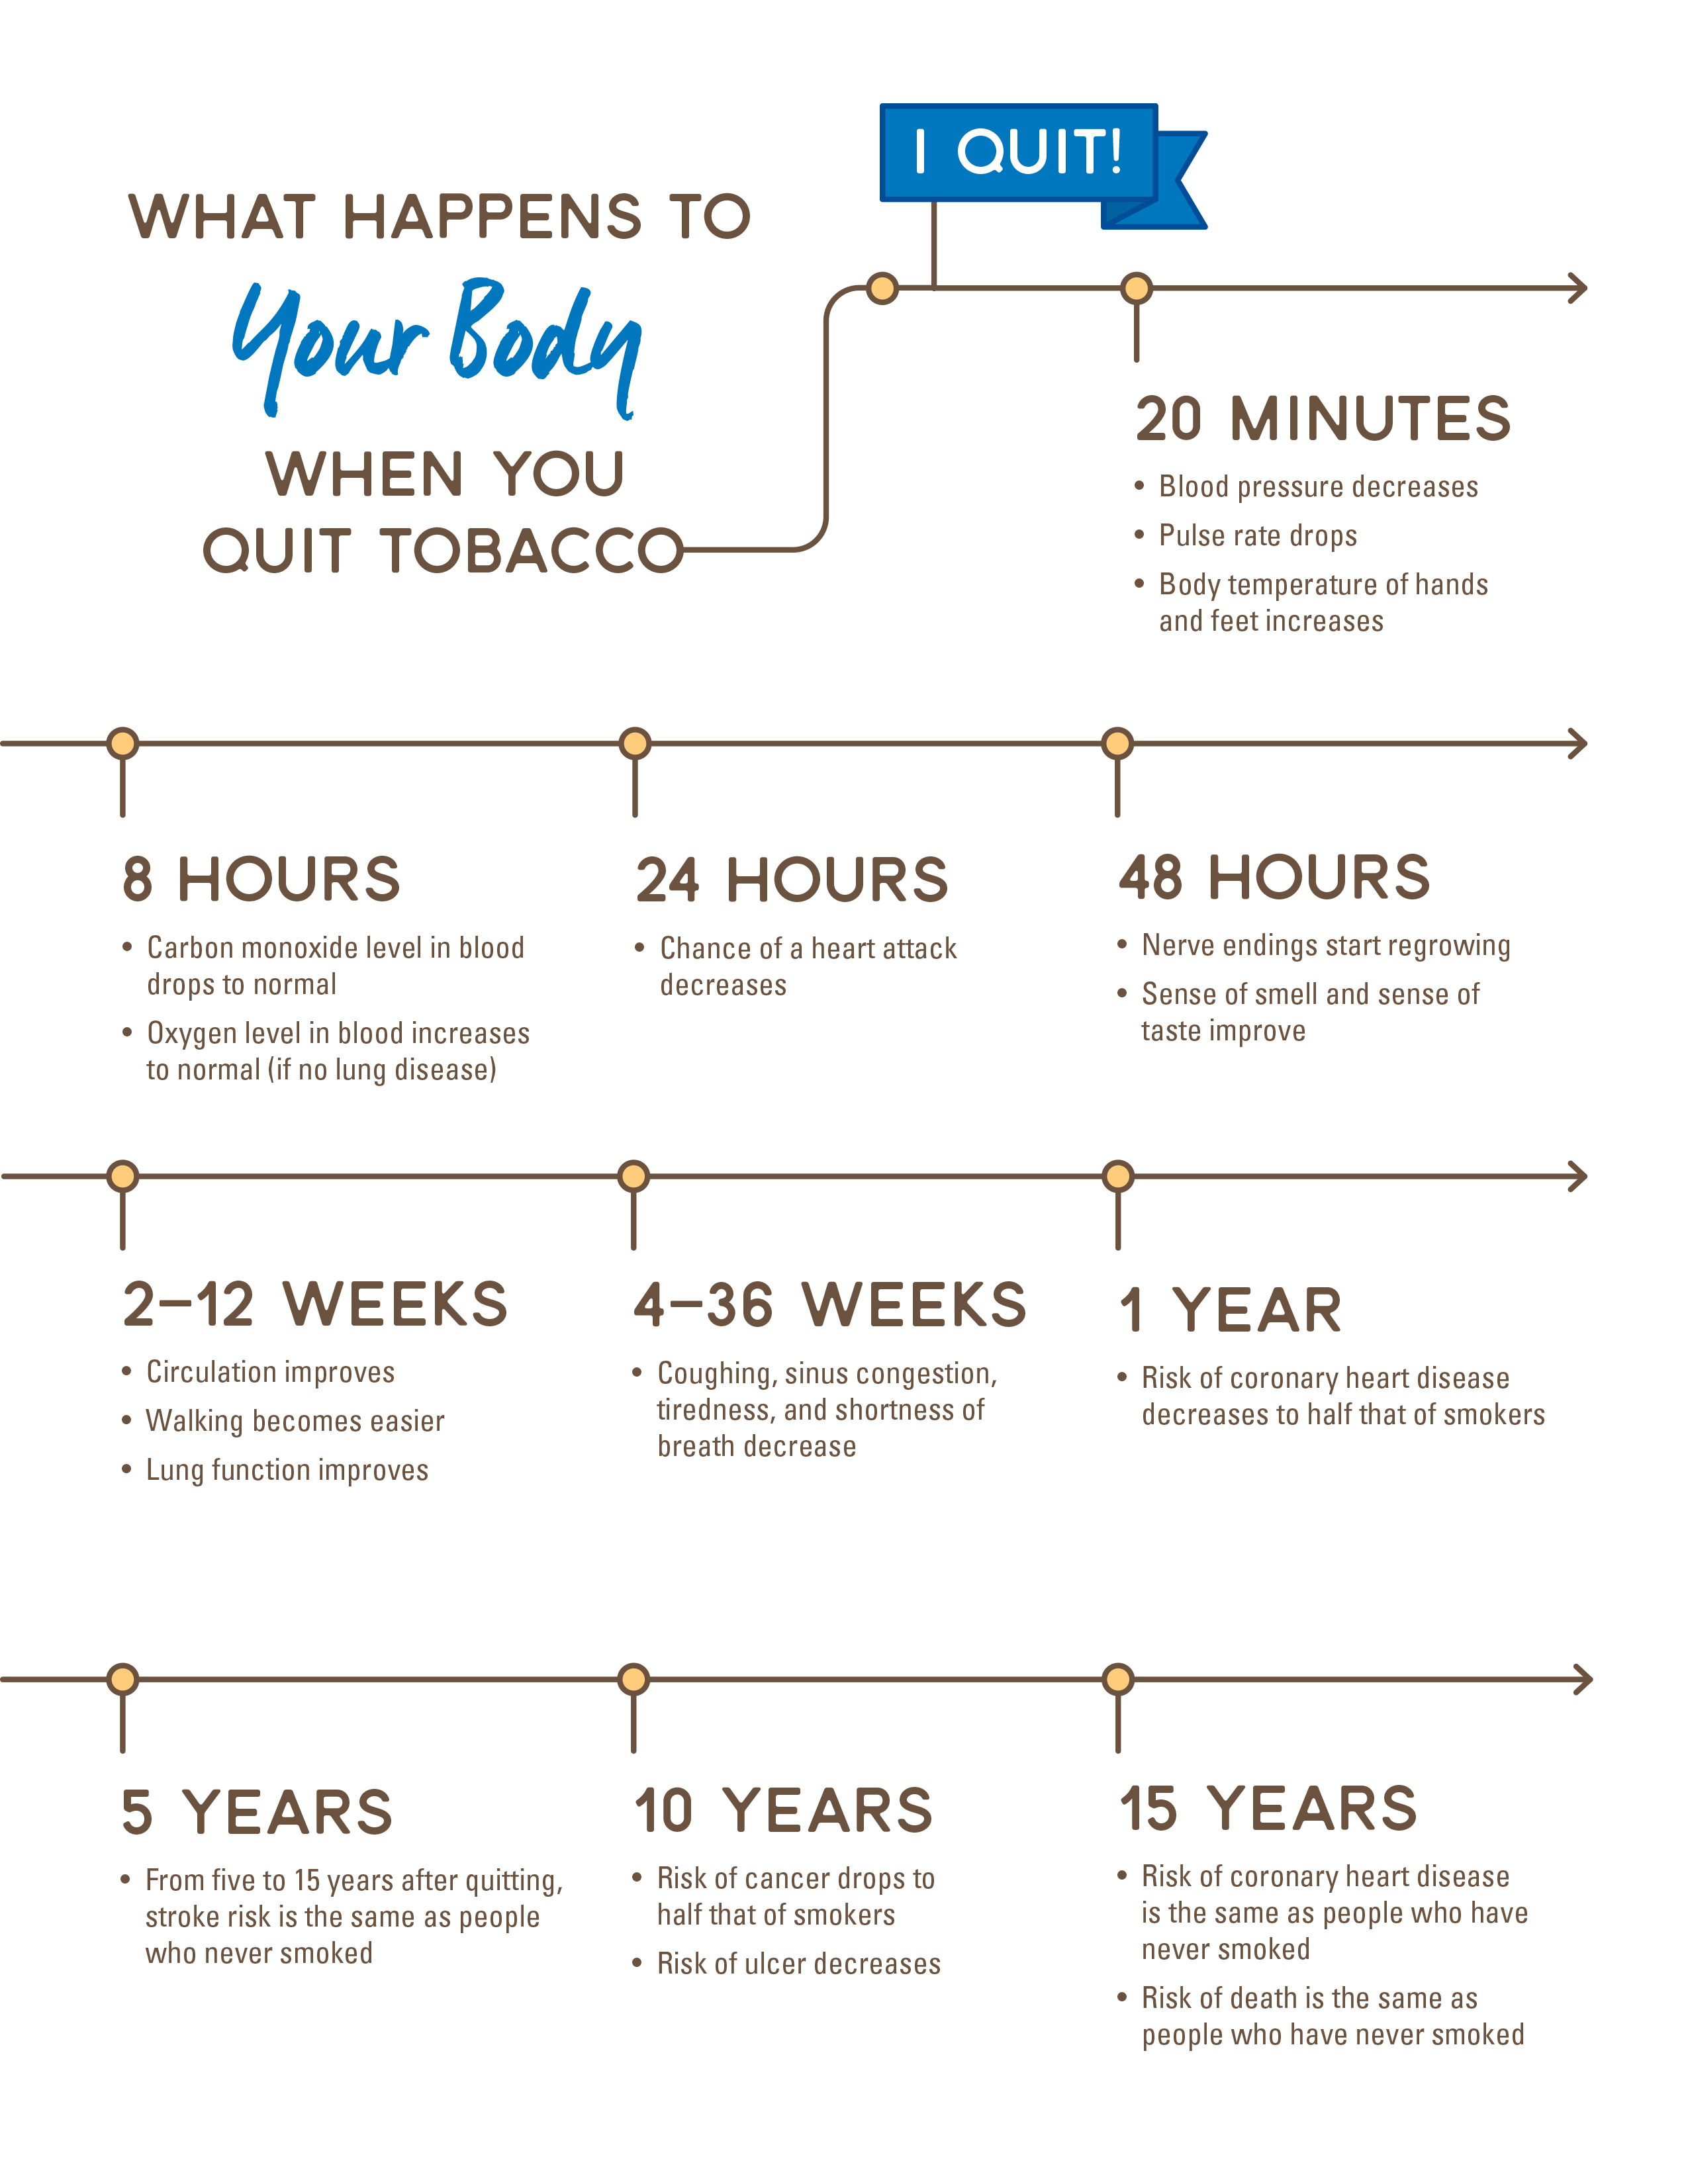 What happens to your body when you quit tobacco.